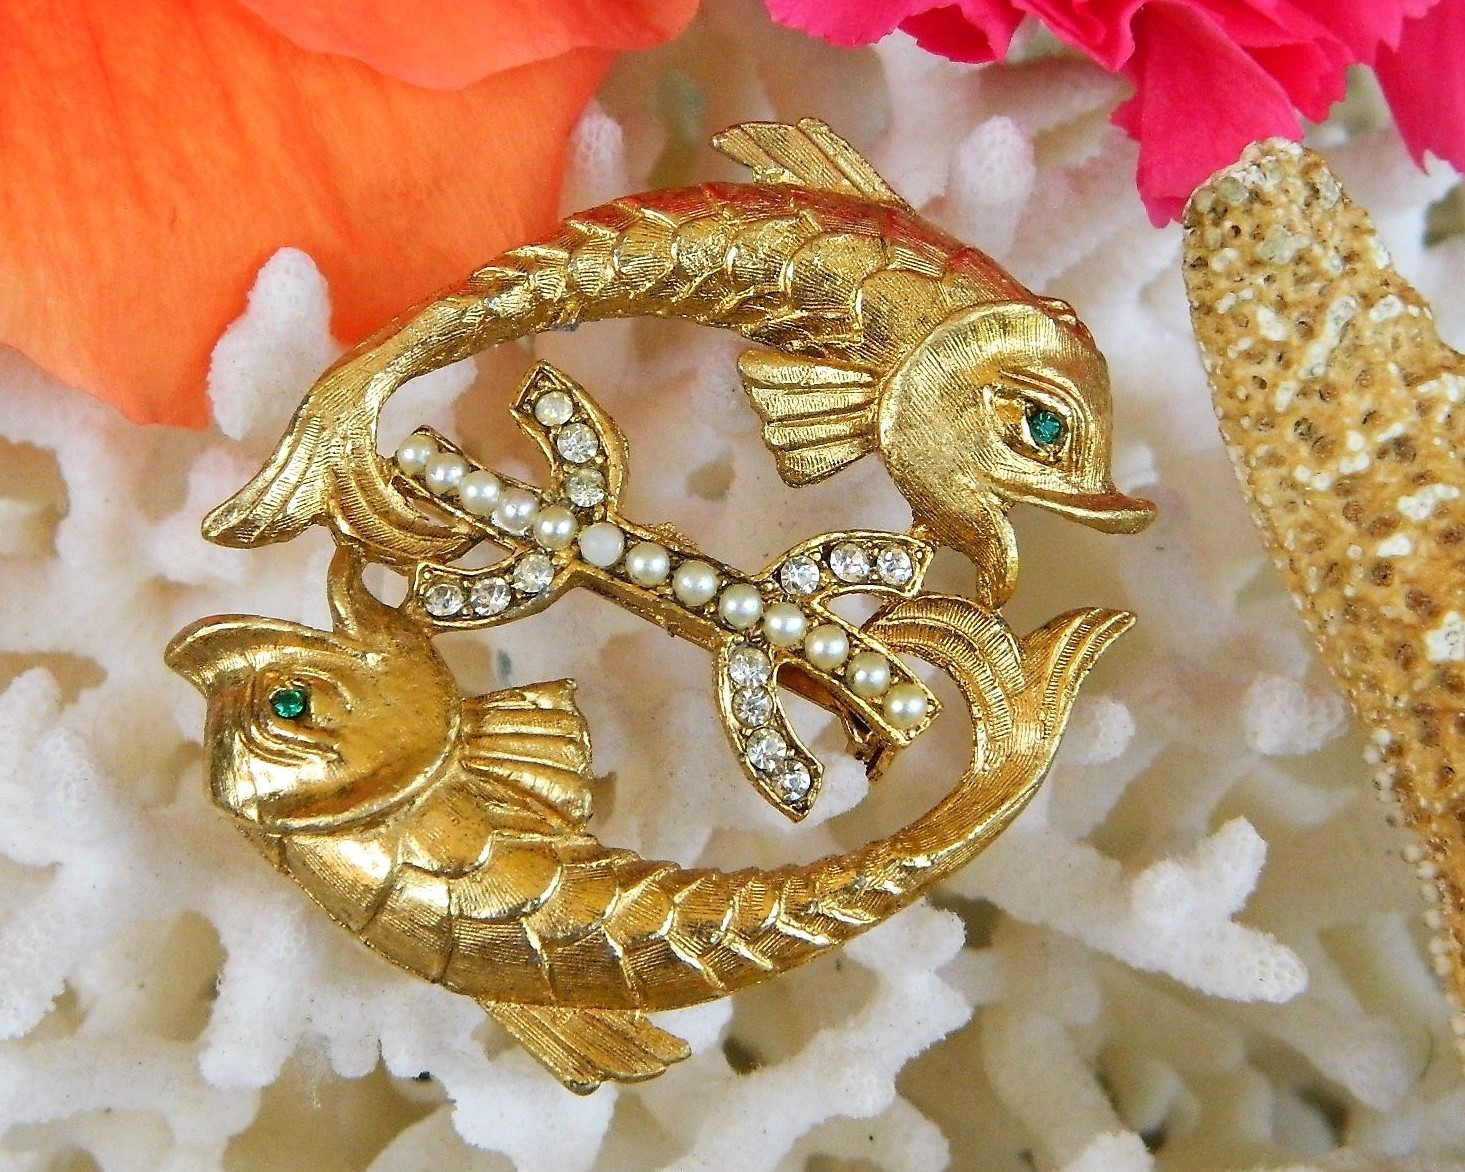 Vintage Pisces Twin Double Fish Brooch Pin Pearls Rhinestones Goldtone